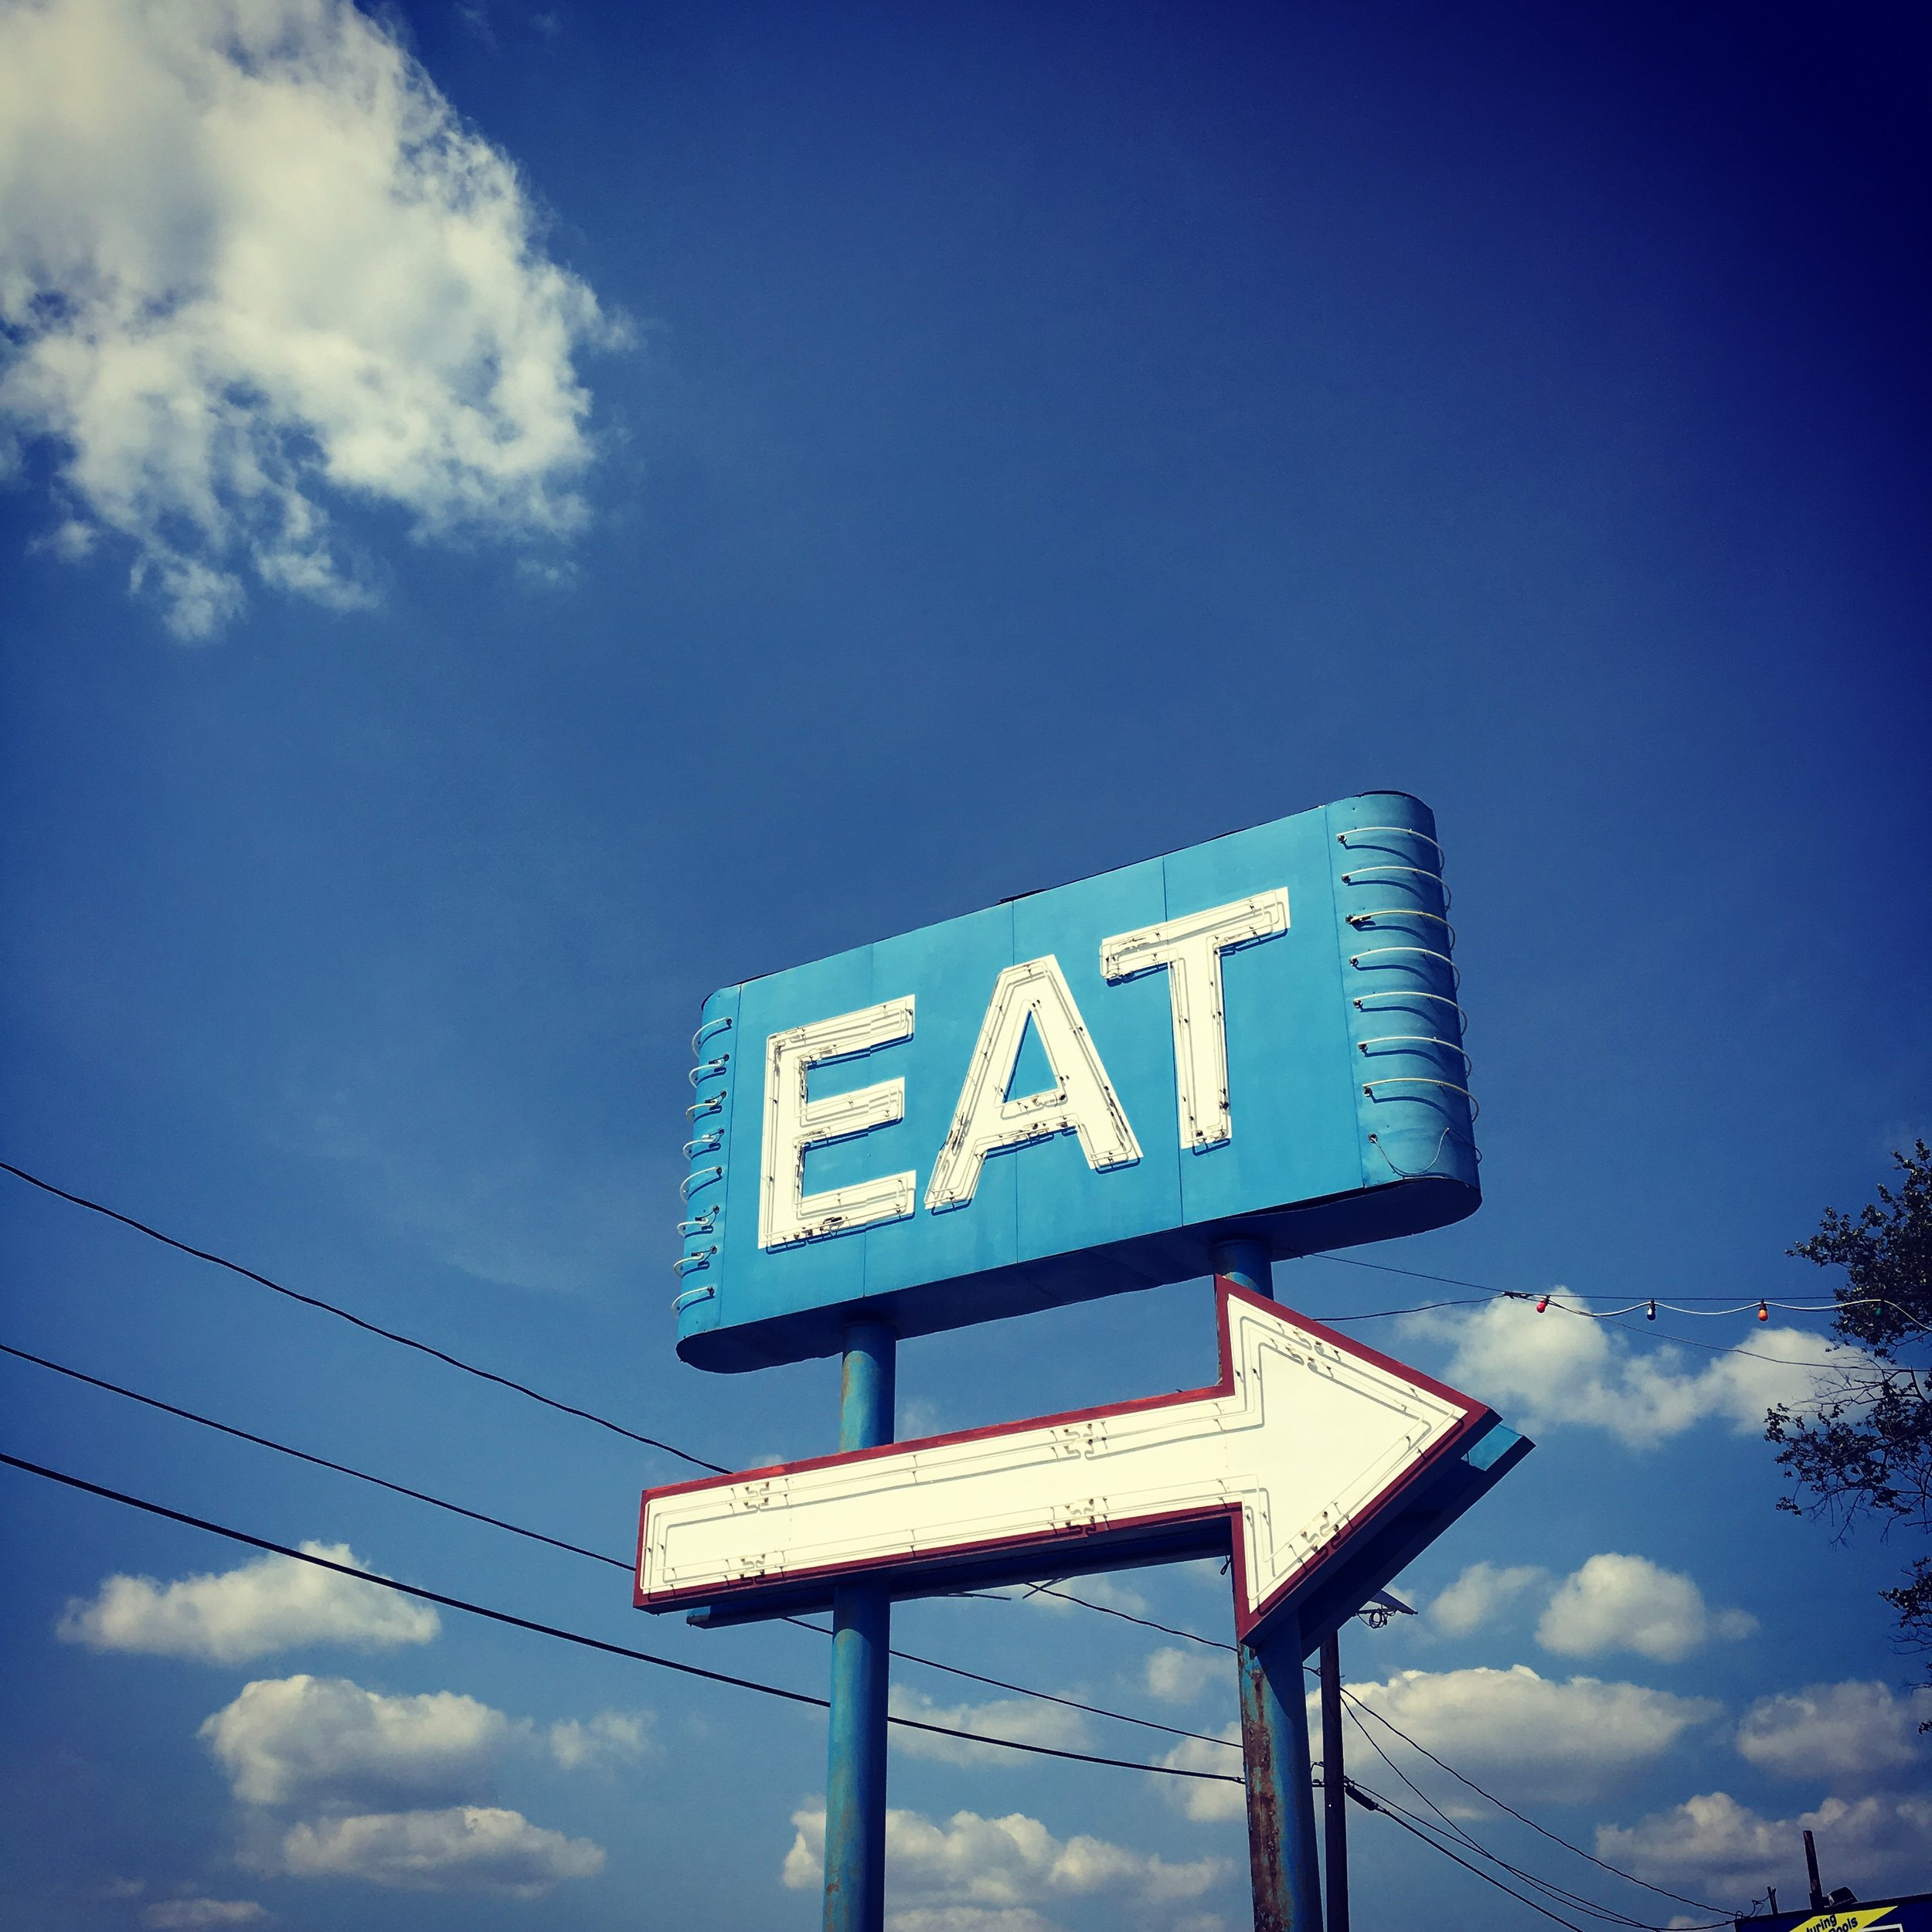 Eat sign, NJ